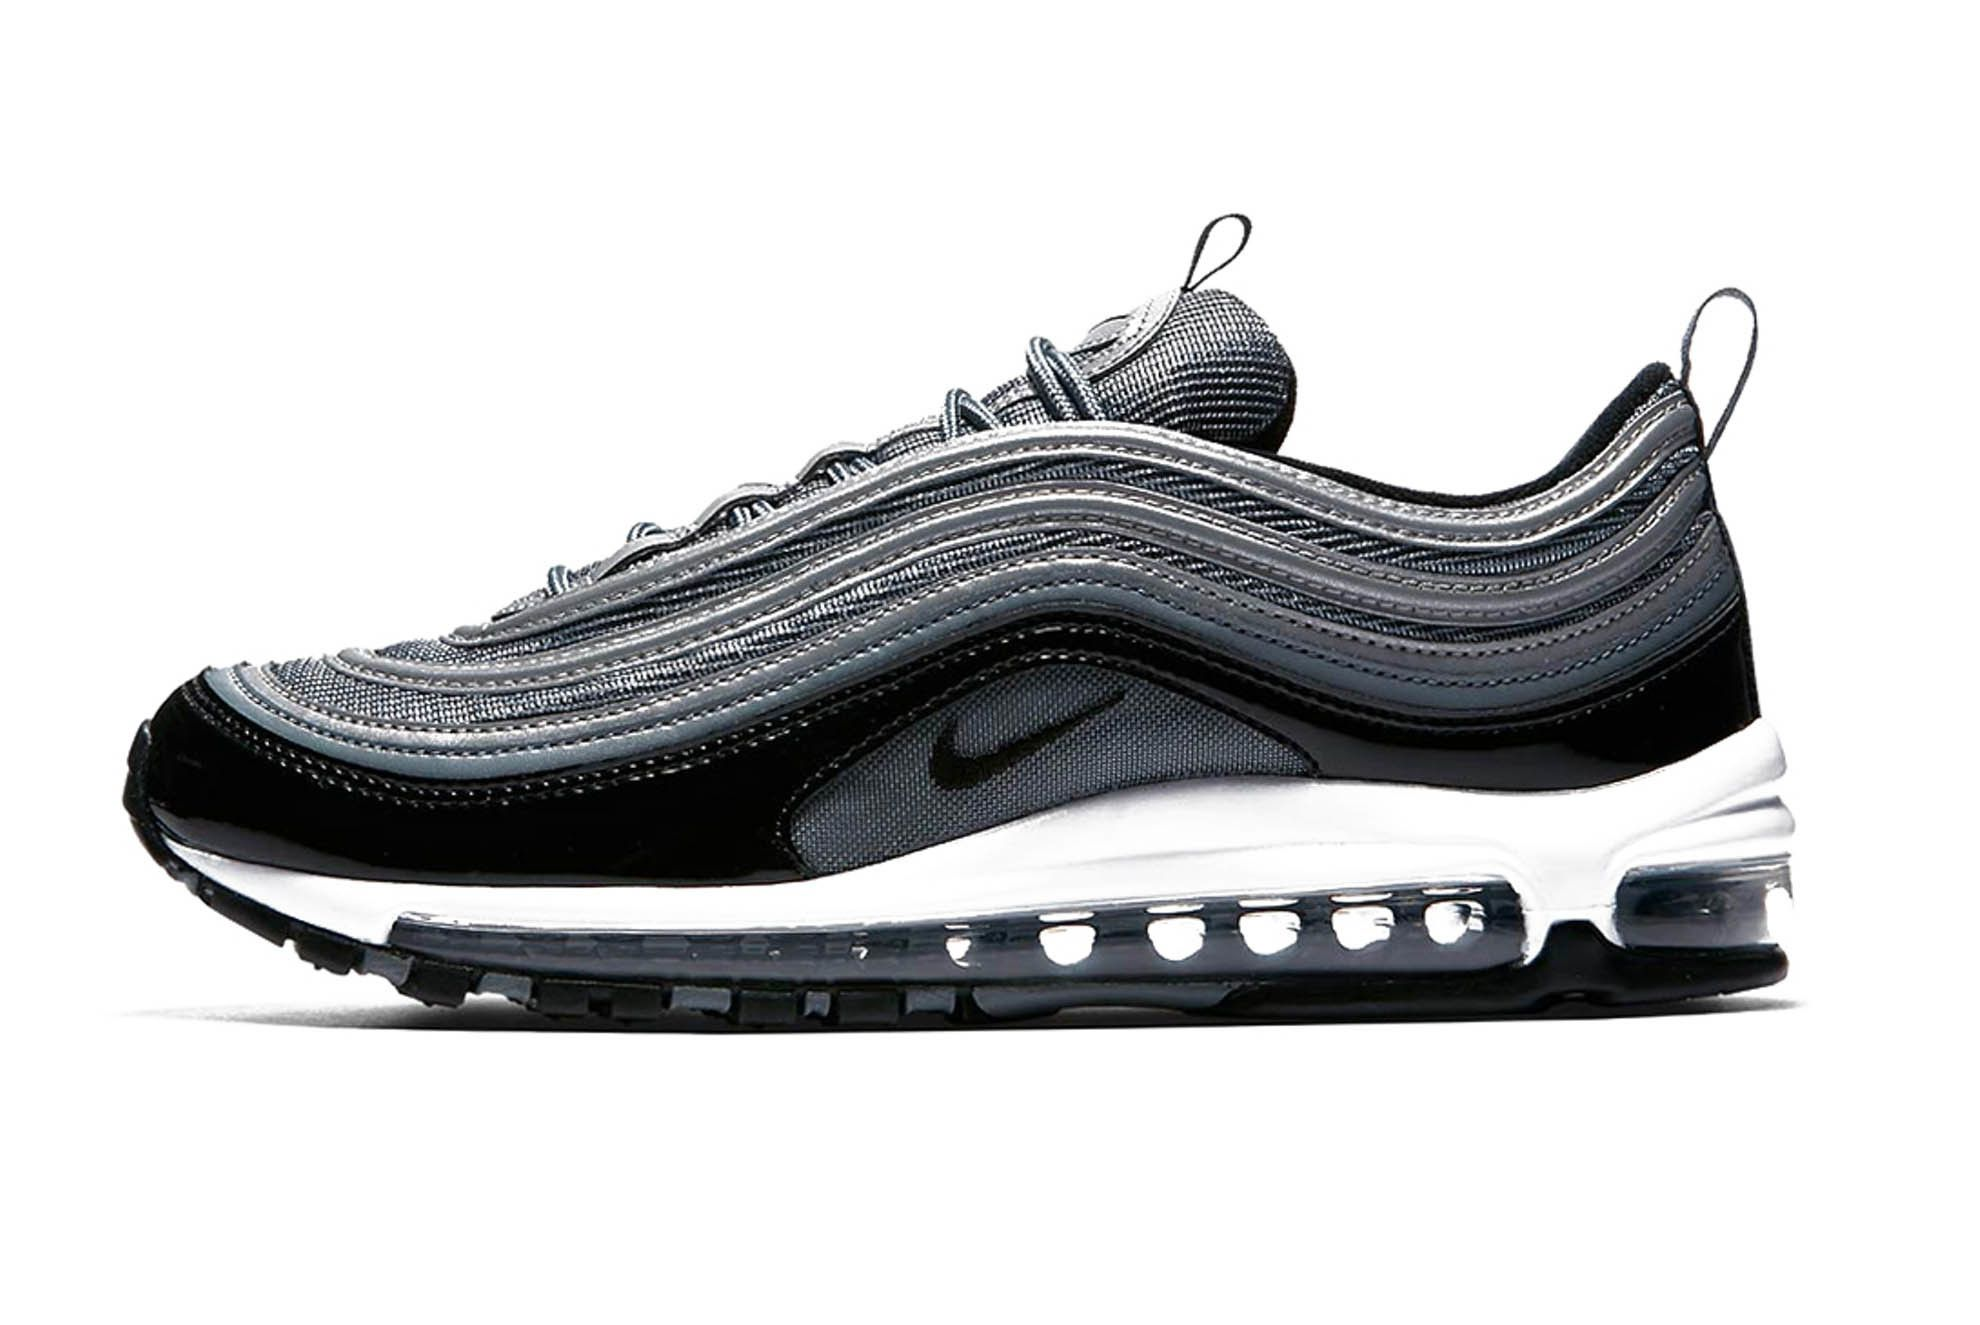 Nike Air Max 97 Black Patent Leather Release 001 Sneaker Freaker